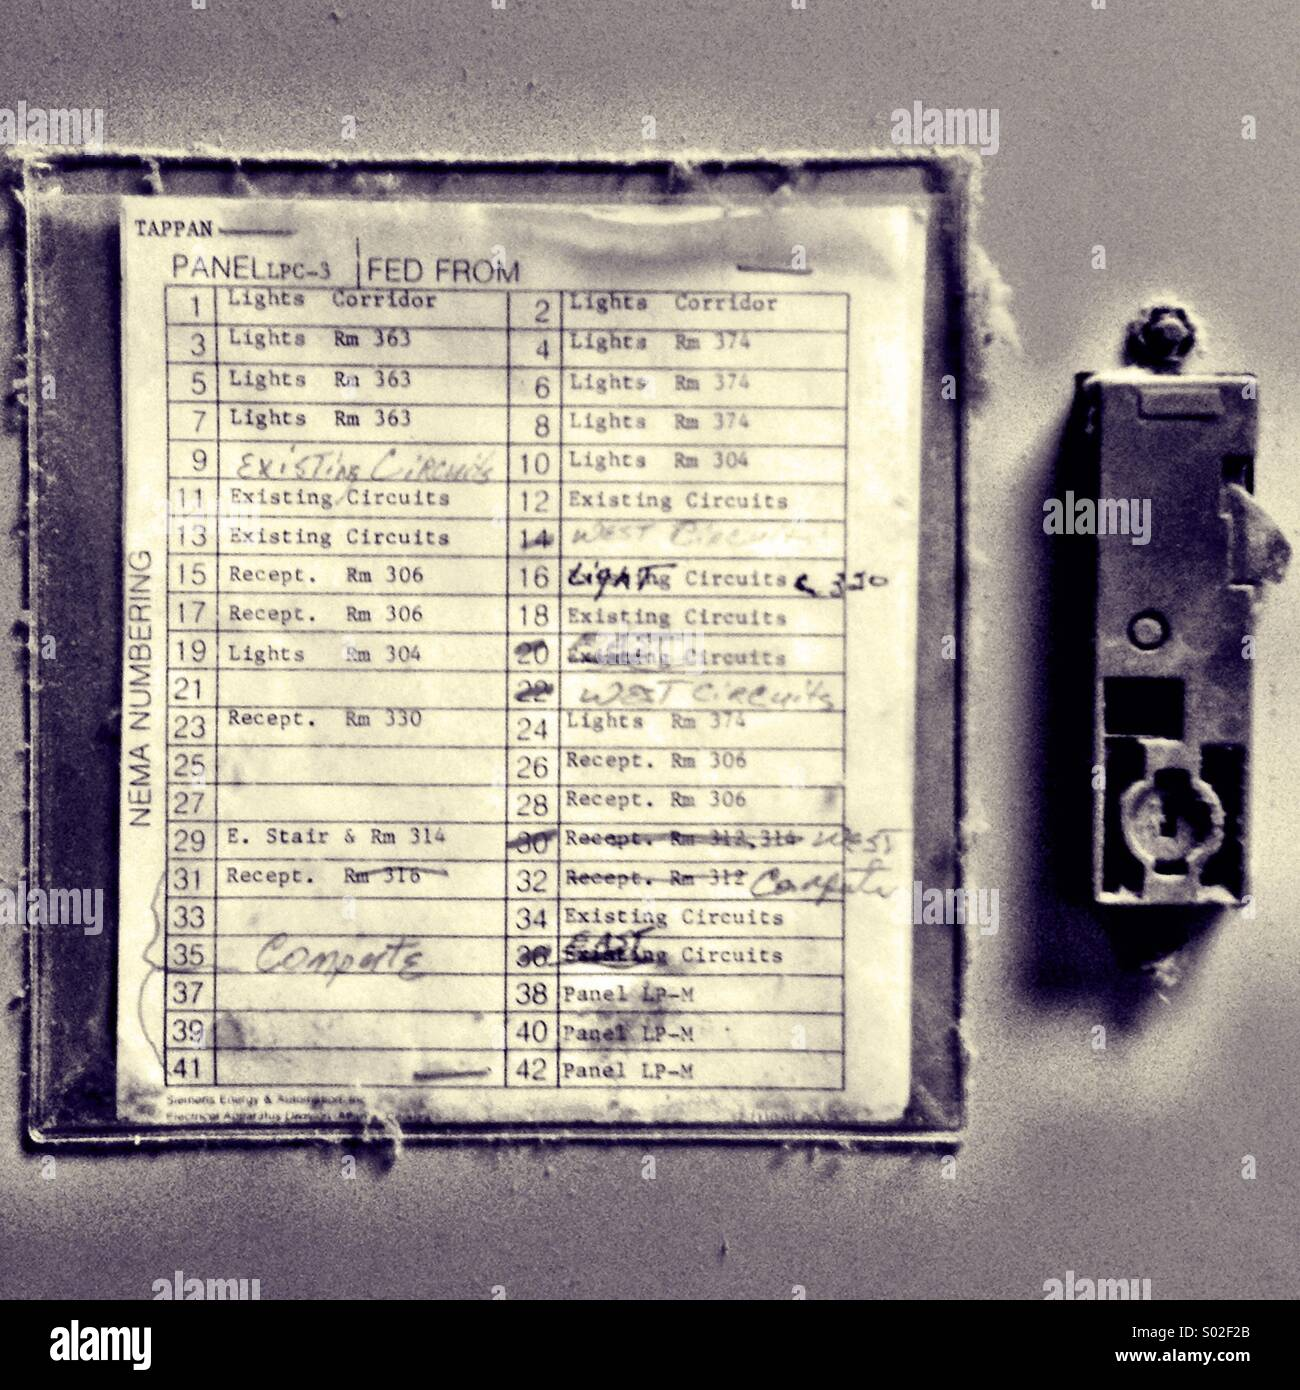 Fuse list from electrical junction box. - Stock Image